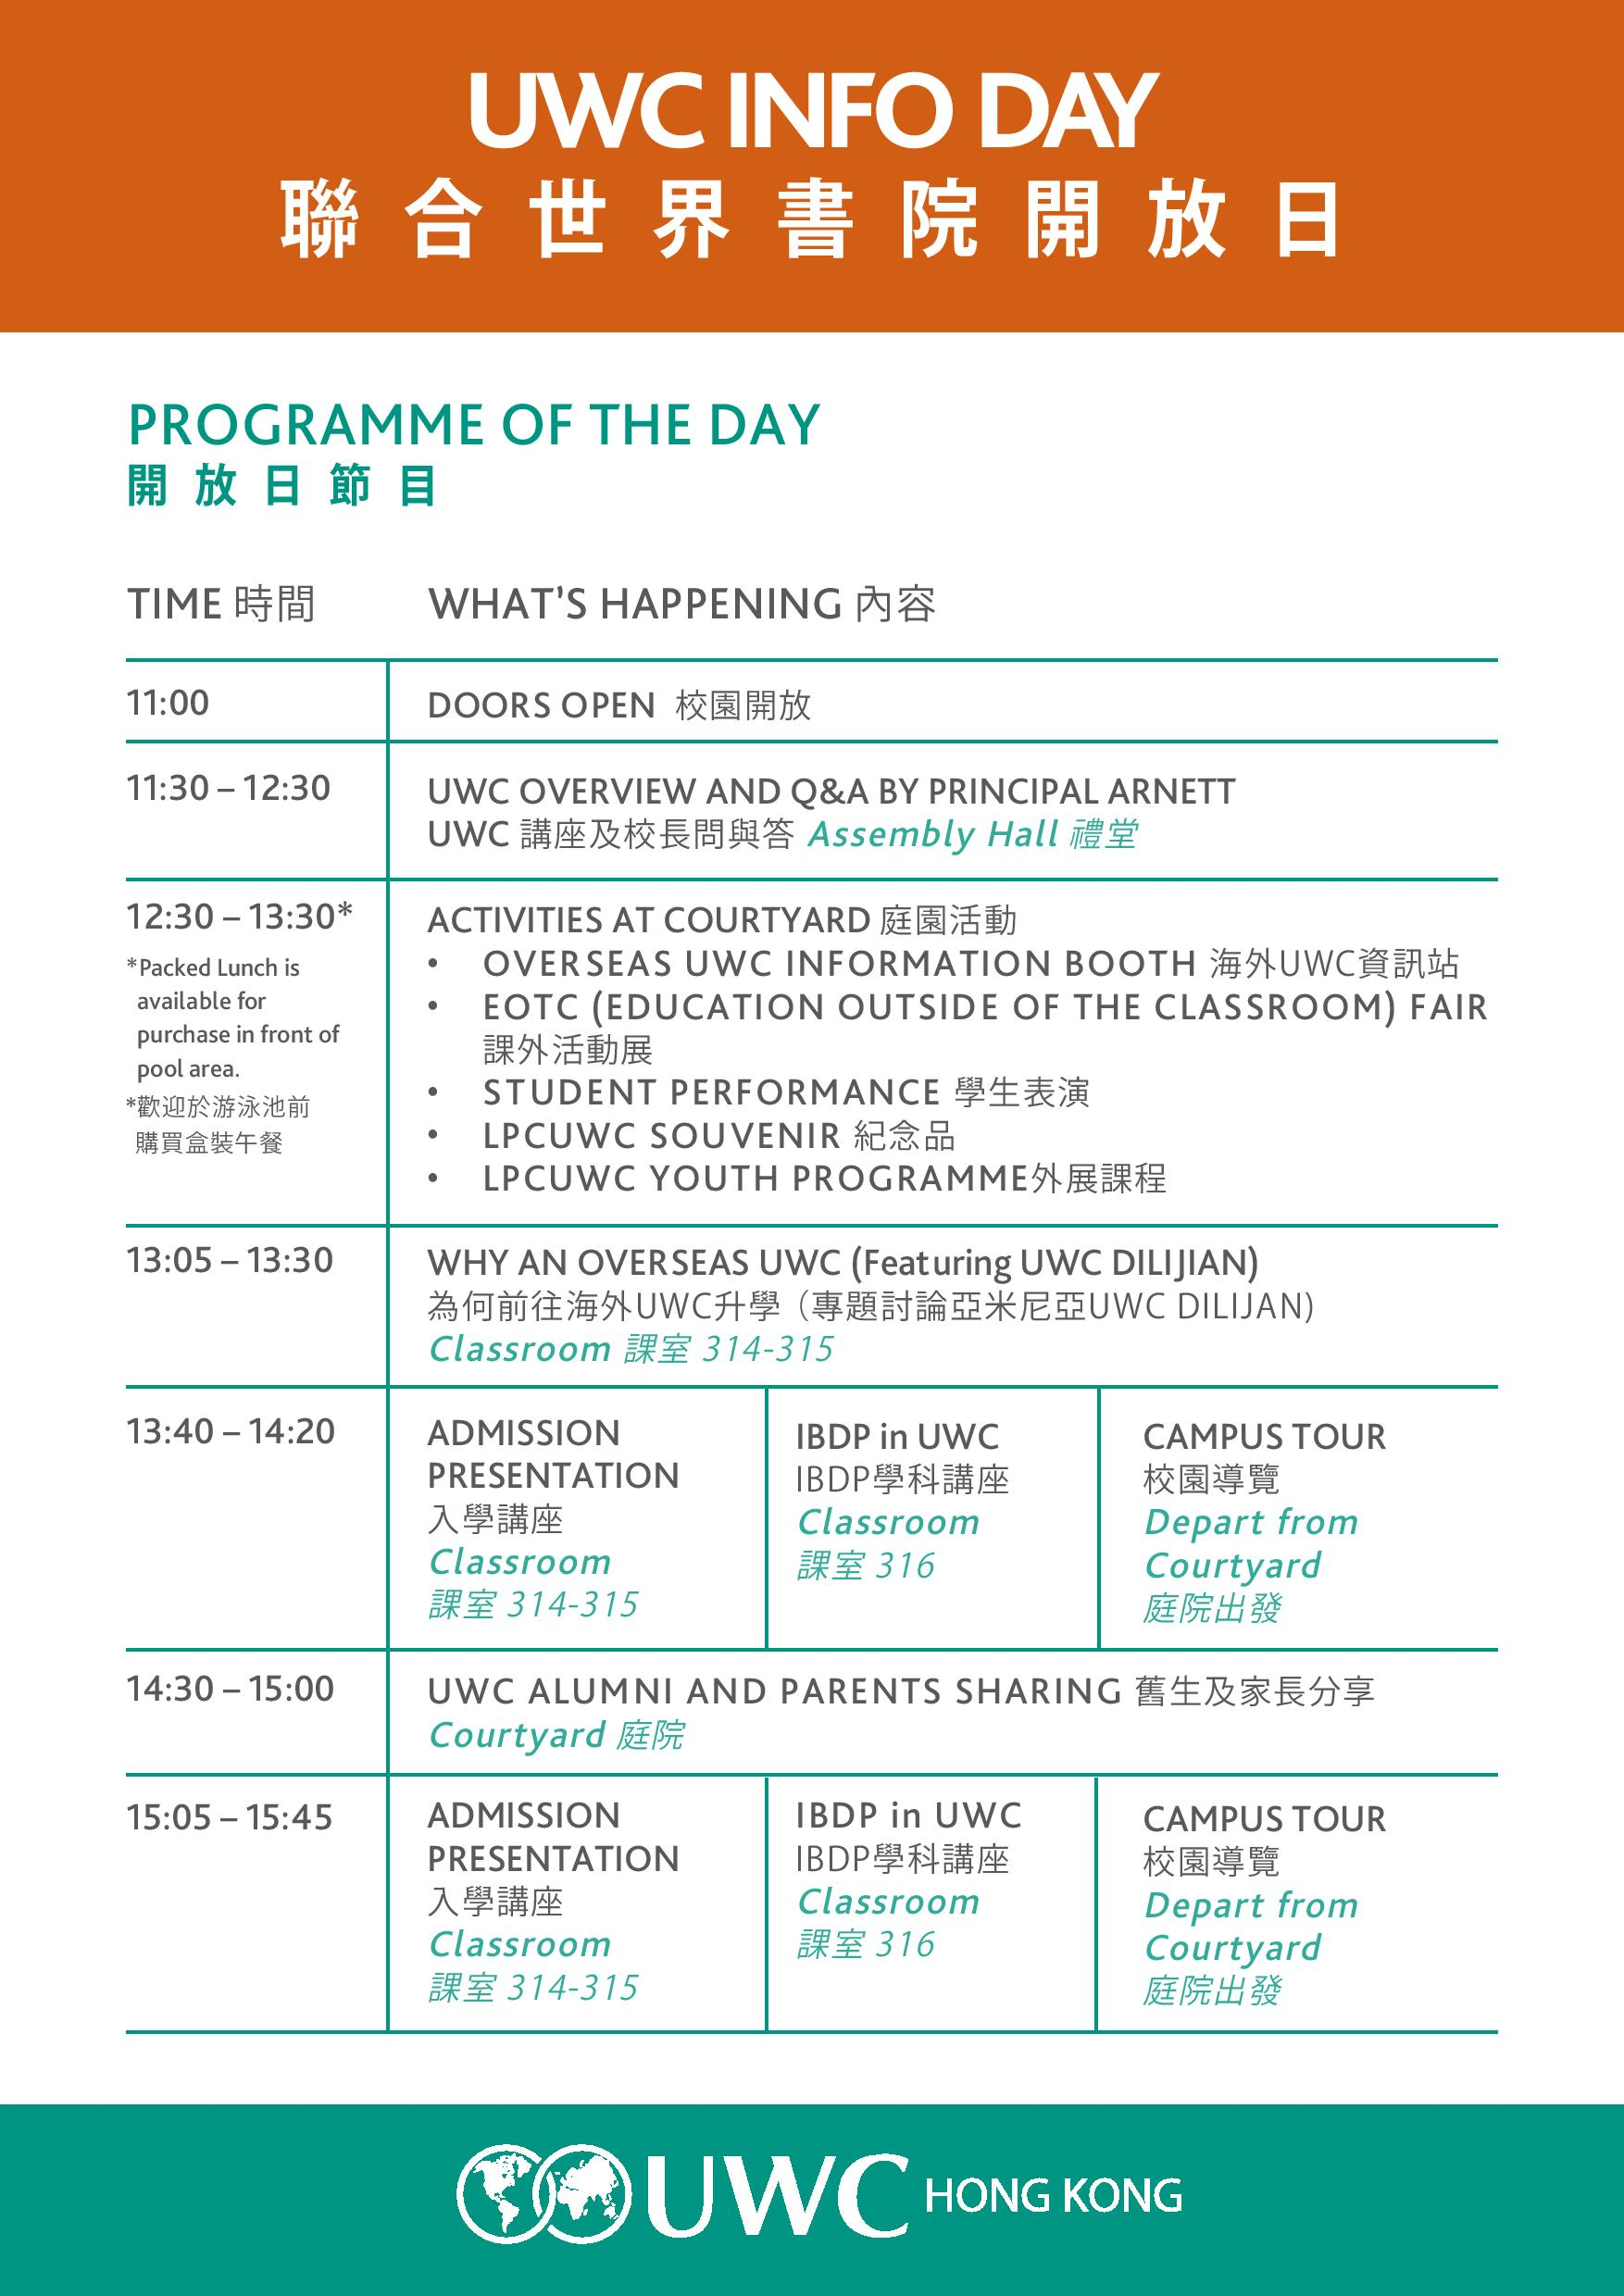 UWC Info Day Nov 10 Rundown page 001